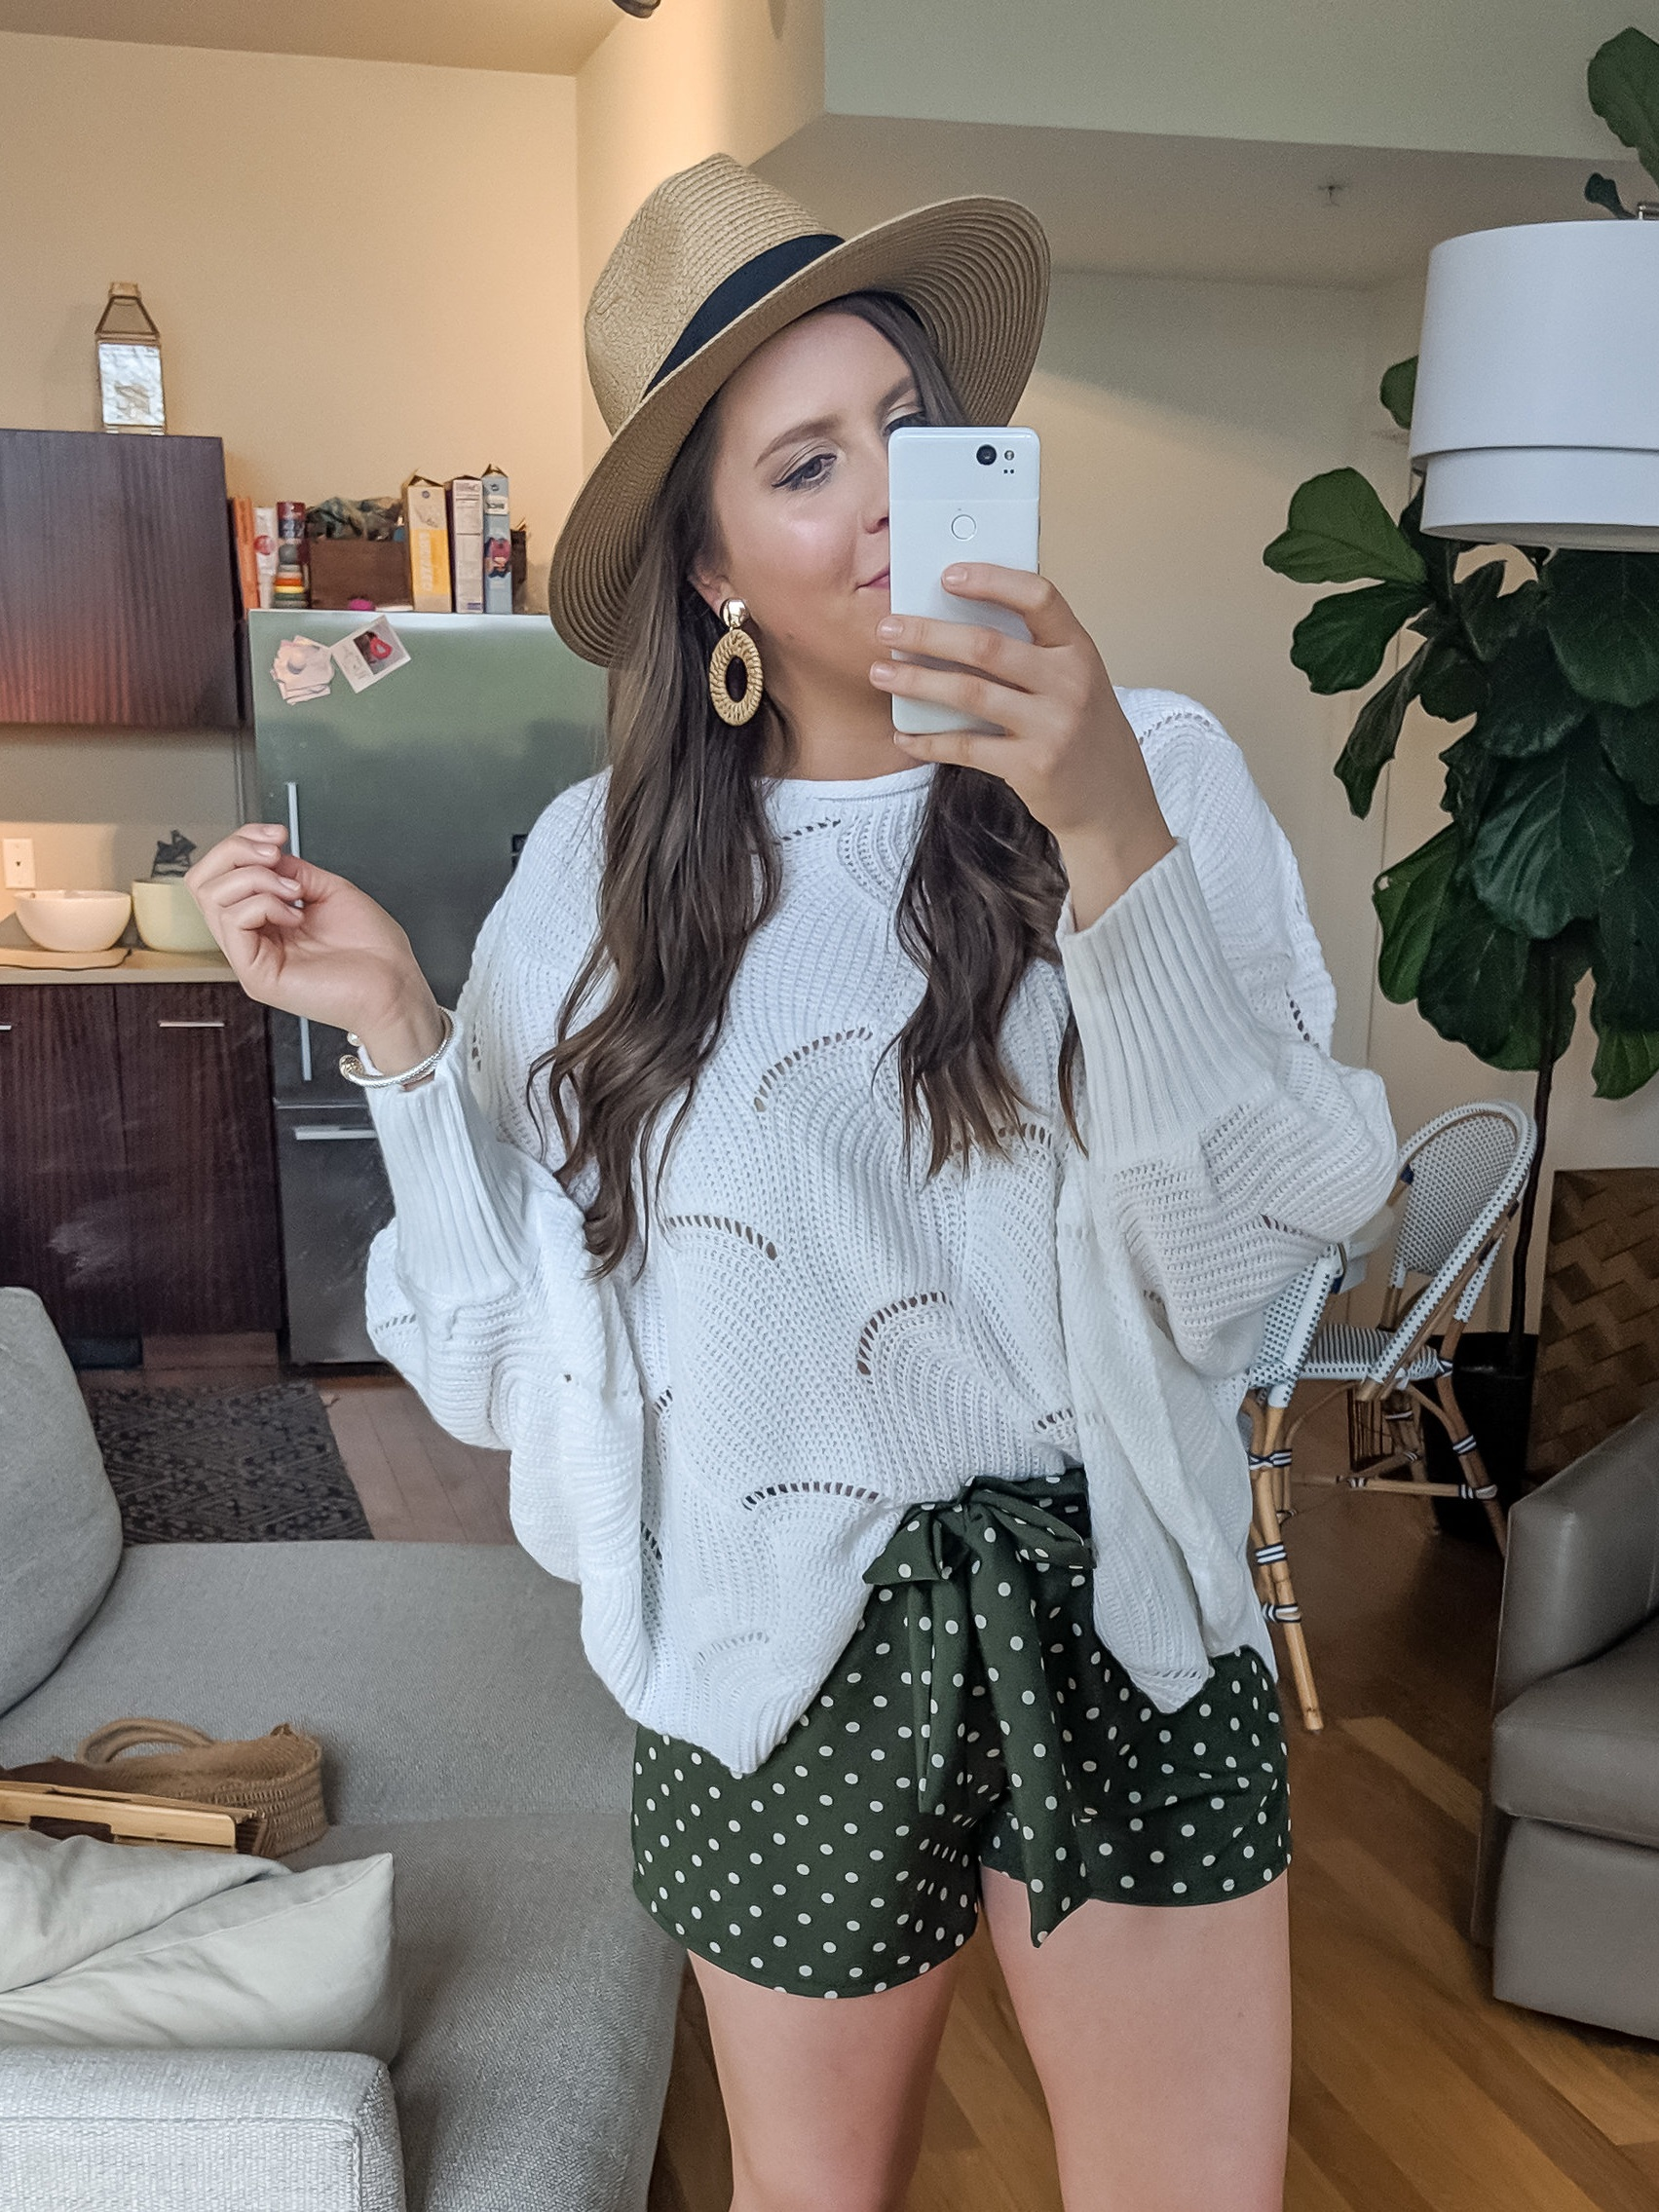 Outfit Details:   HAT   //   EARRINGS   //   SWEATER   //   SHORTS   //  Wear just a couple of natural elements like this hat and these earrings if you're unsure how to pair items, just start with one until you're more comfortable mixing and matching textures and colors!